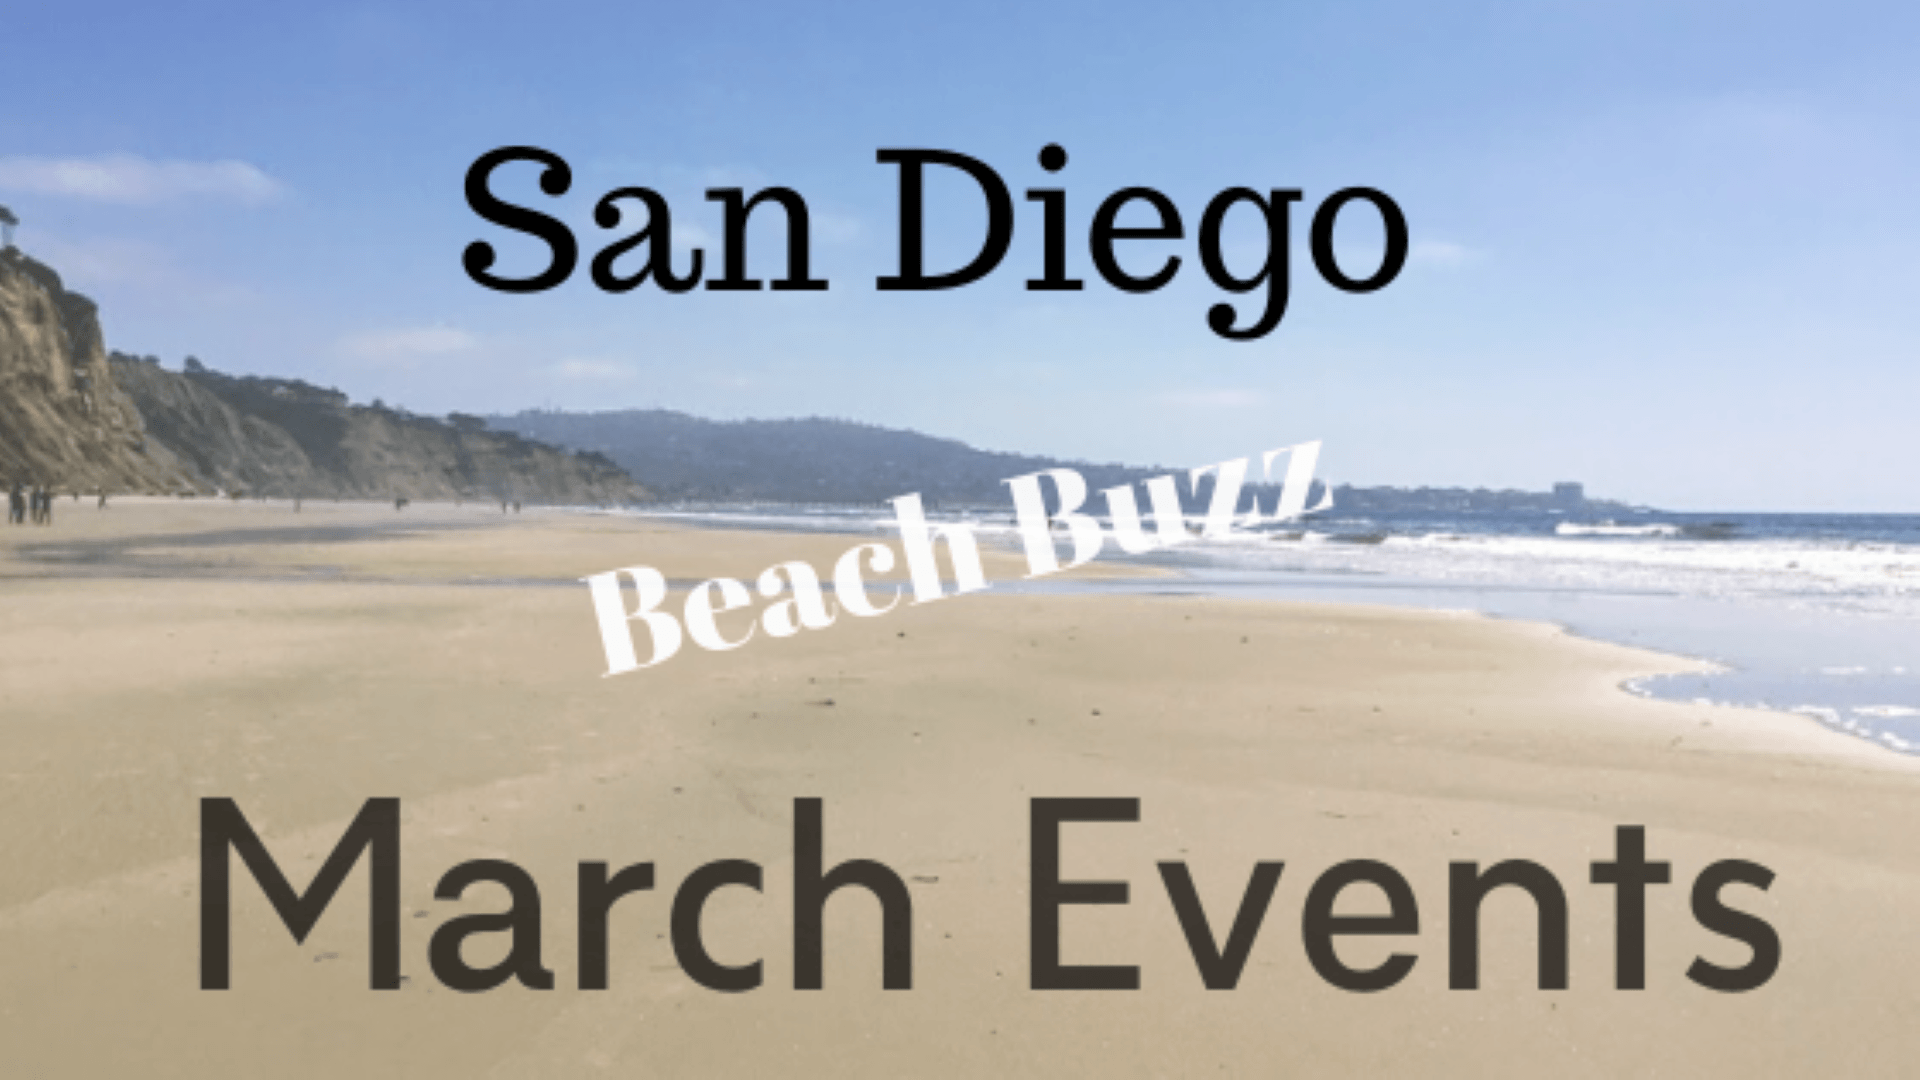 San Diego Beach Buzz March Events